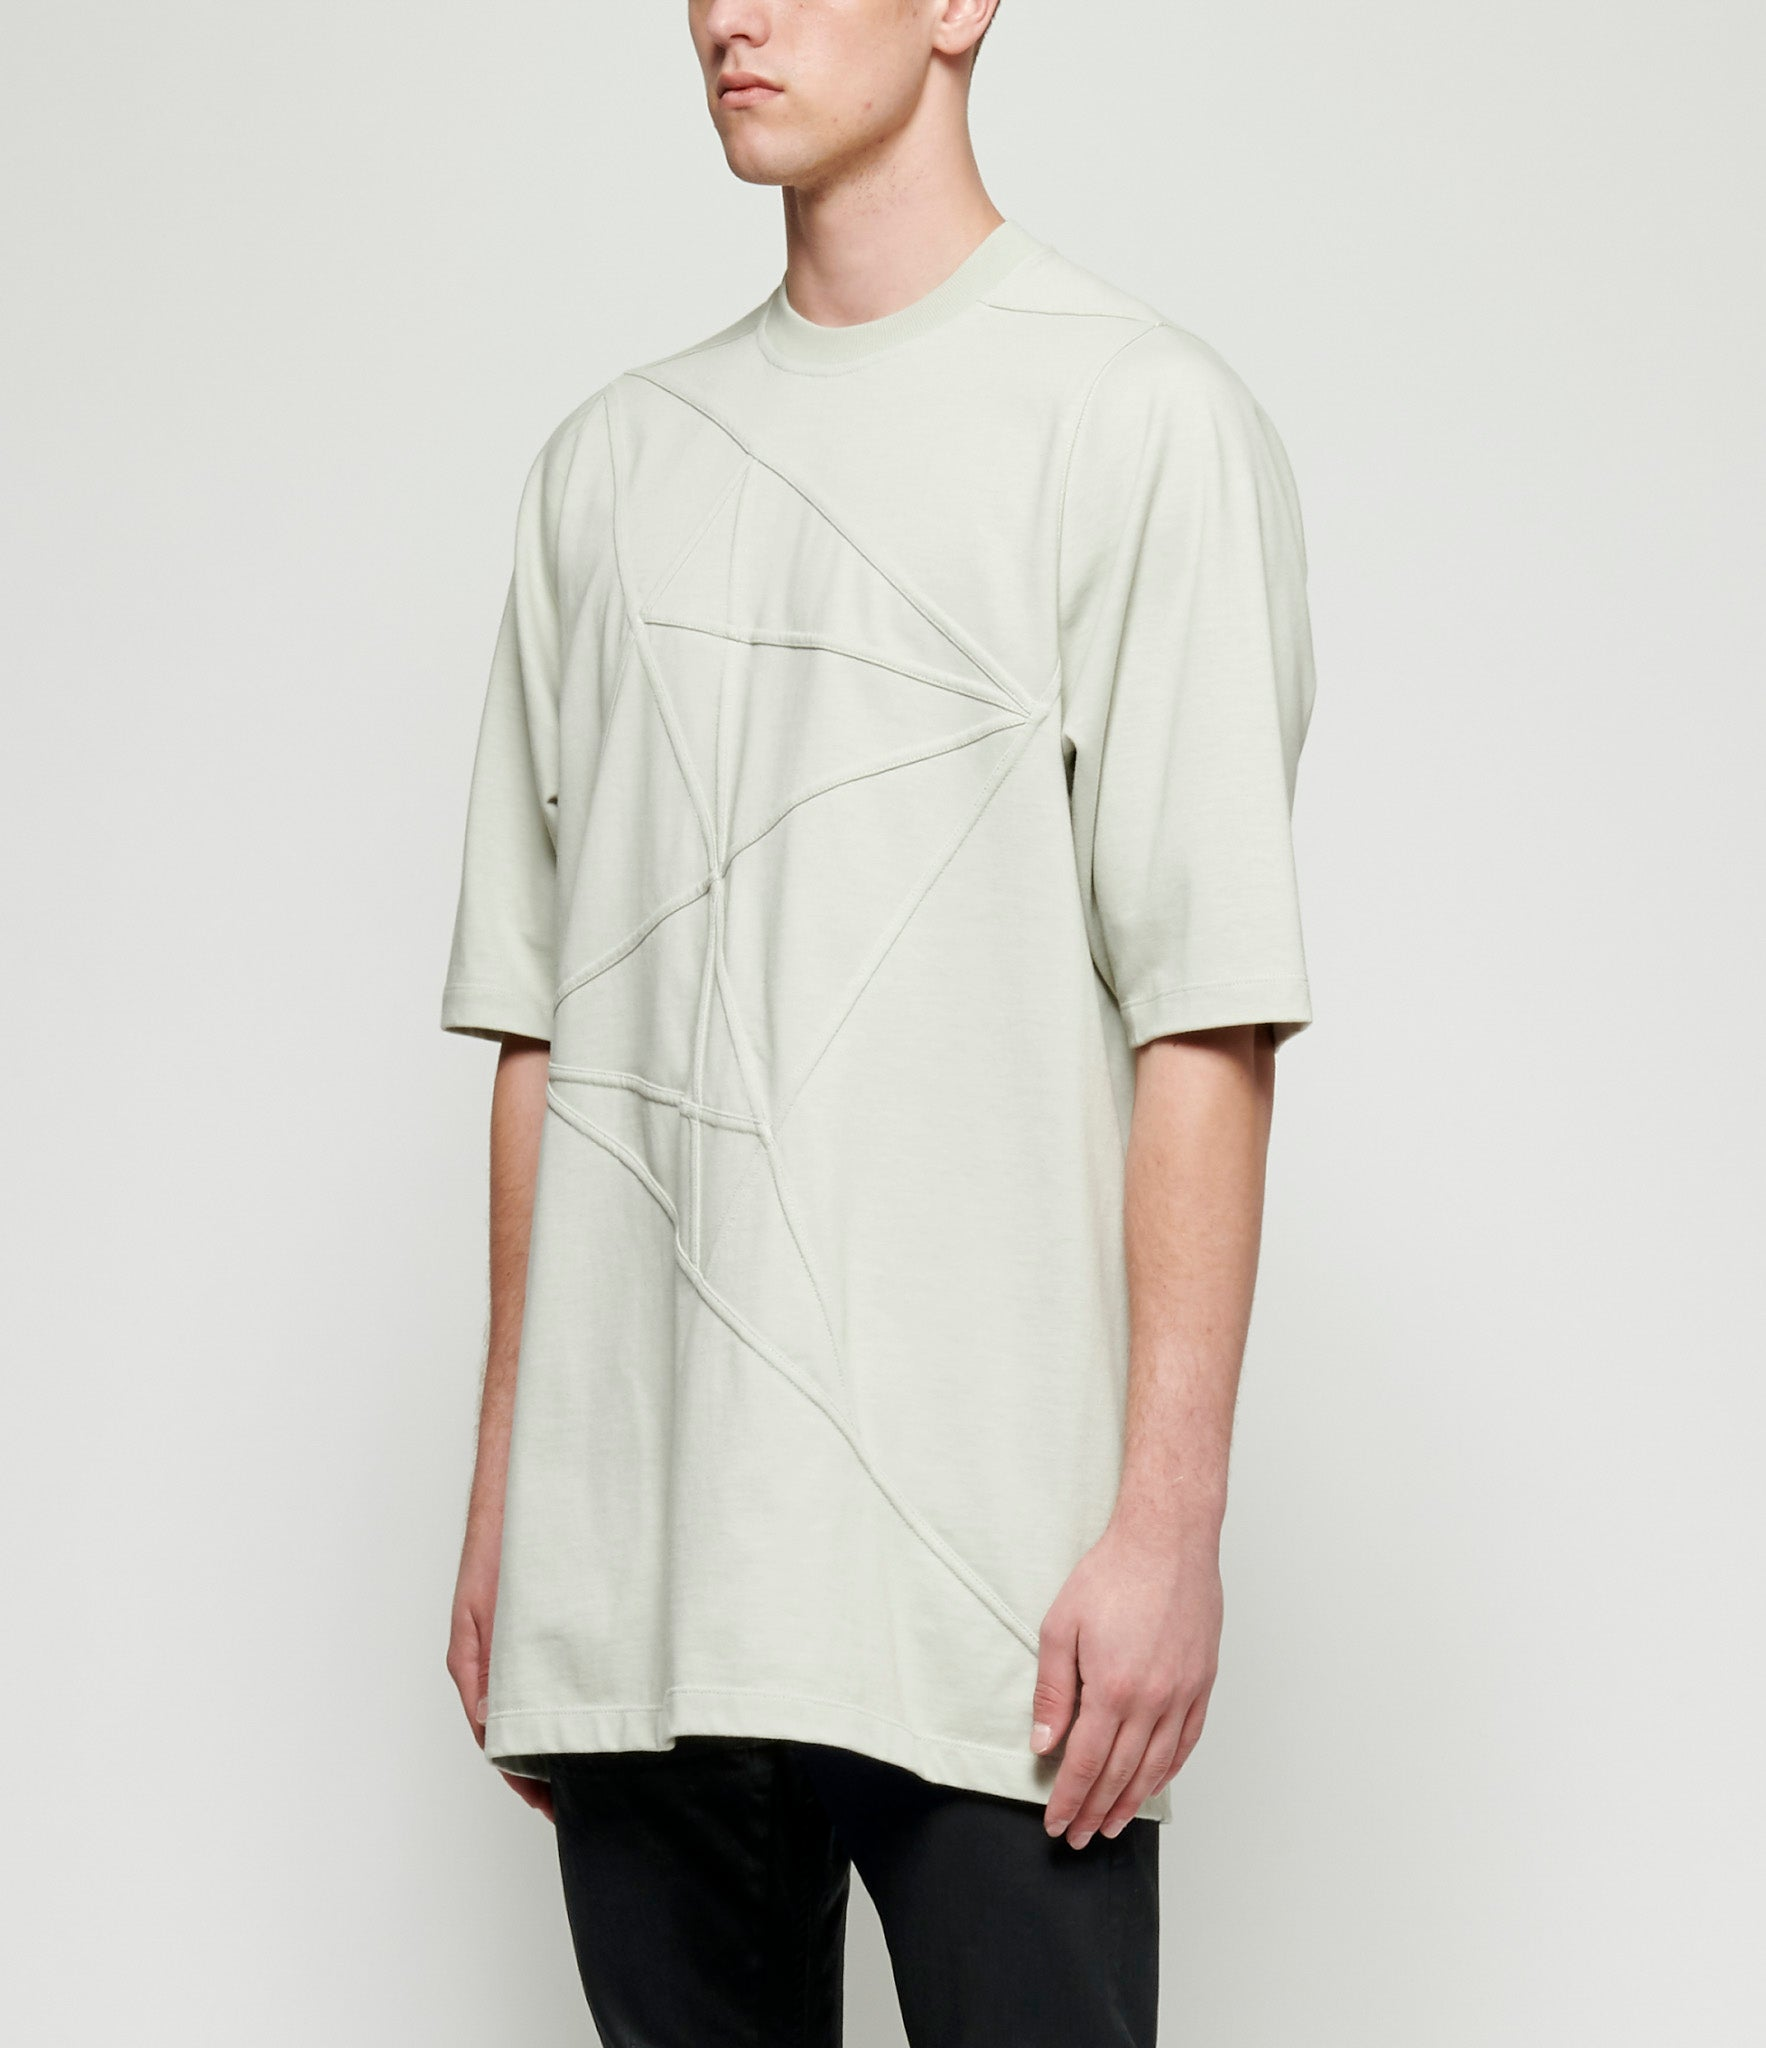 Rick Owens Embroidered Short Sleeve Crewneck